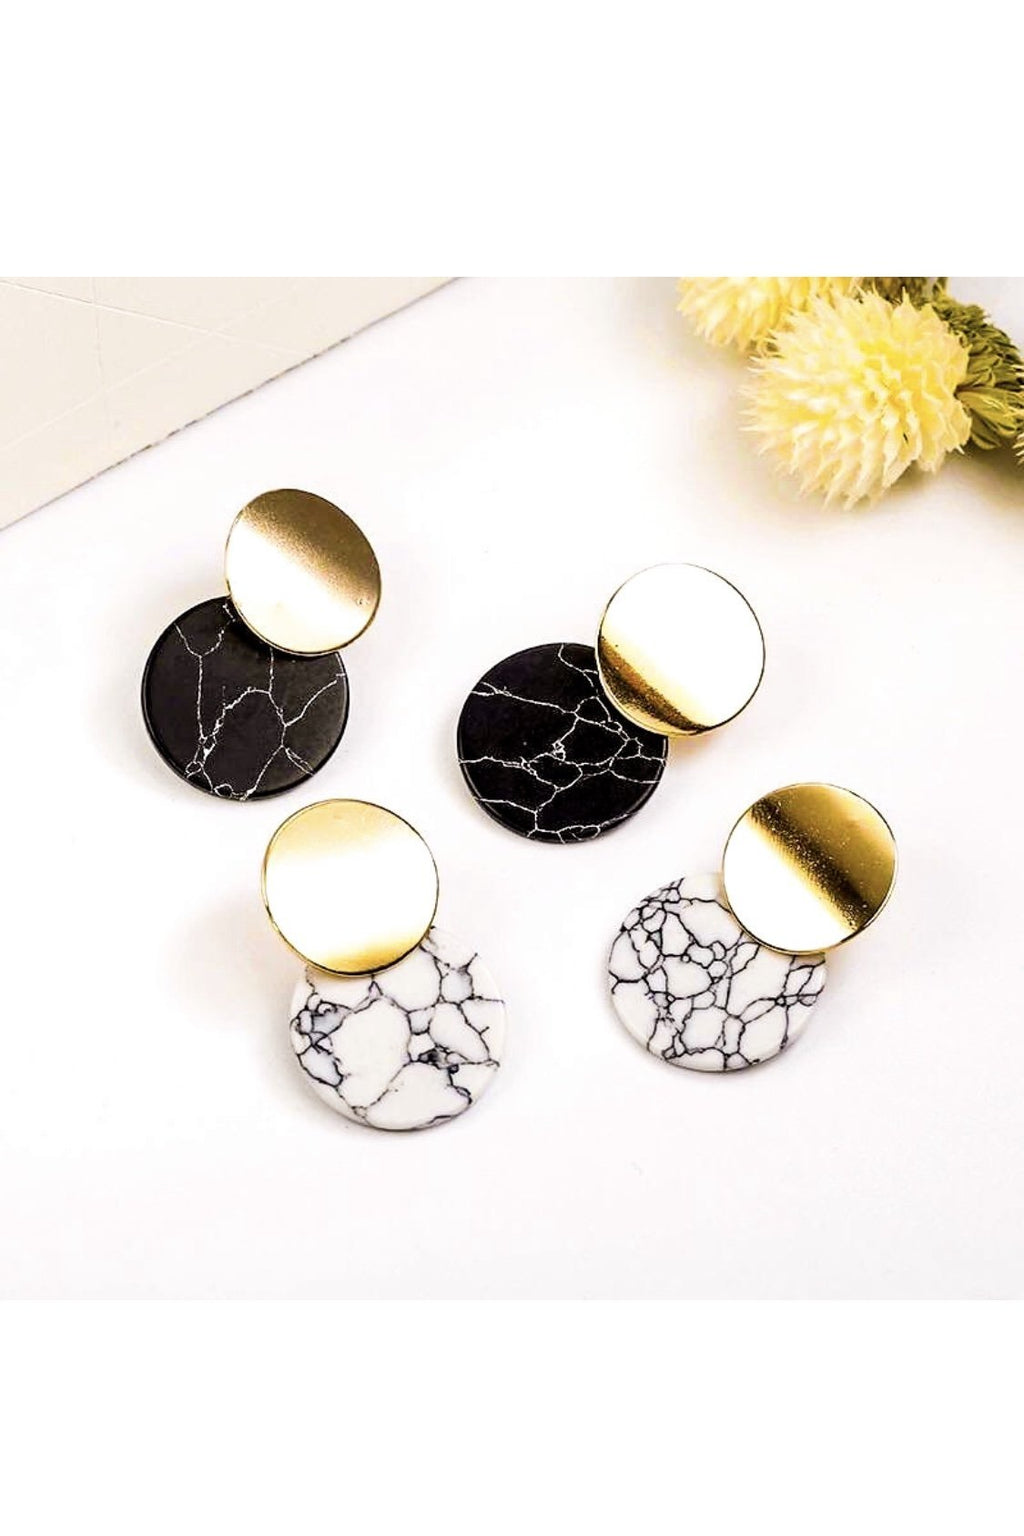 Access Granite Earrings - EarringEverything.com - Studs - earrings - fashion - fashion_accessories